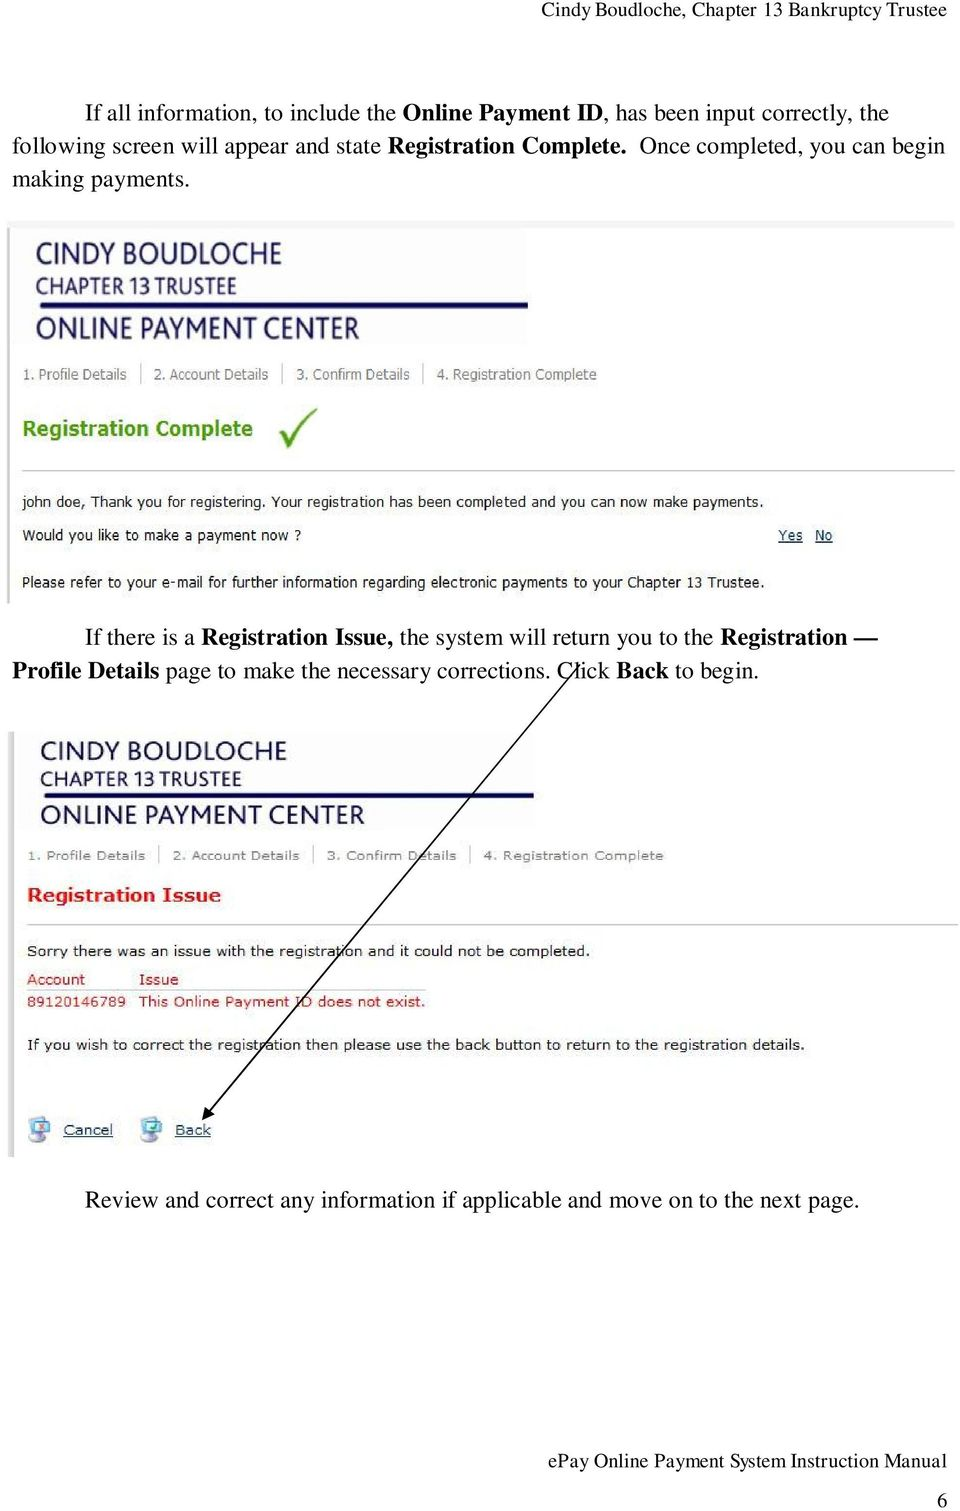 If there is a Registration Issue, the system will return you to the Registration Profile Details page to